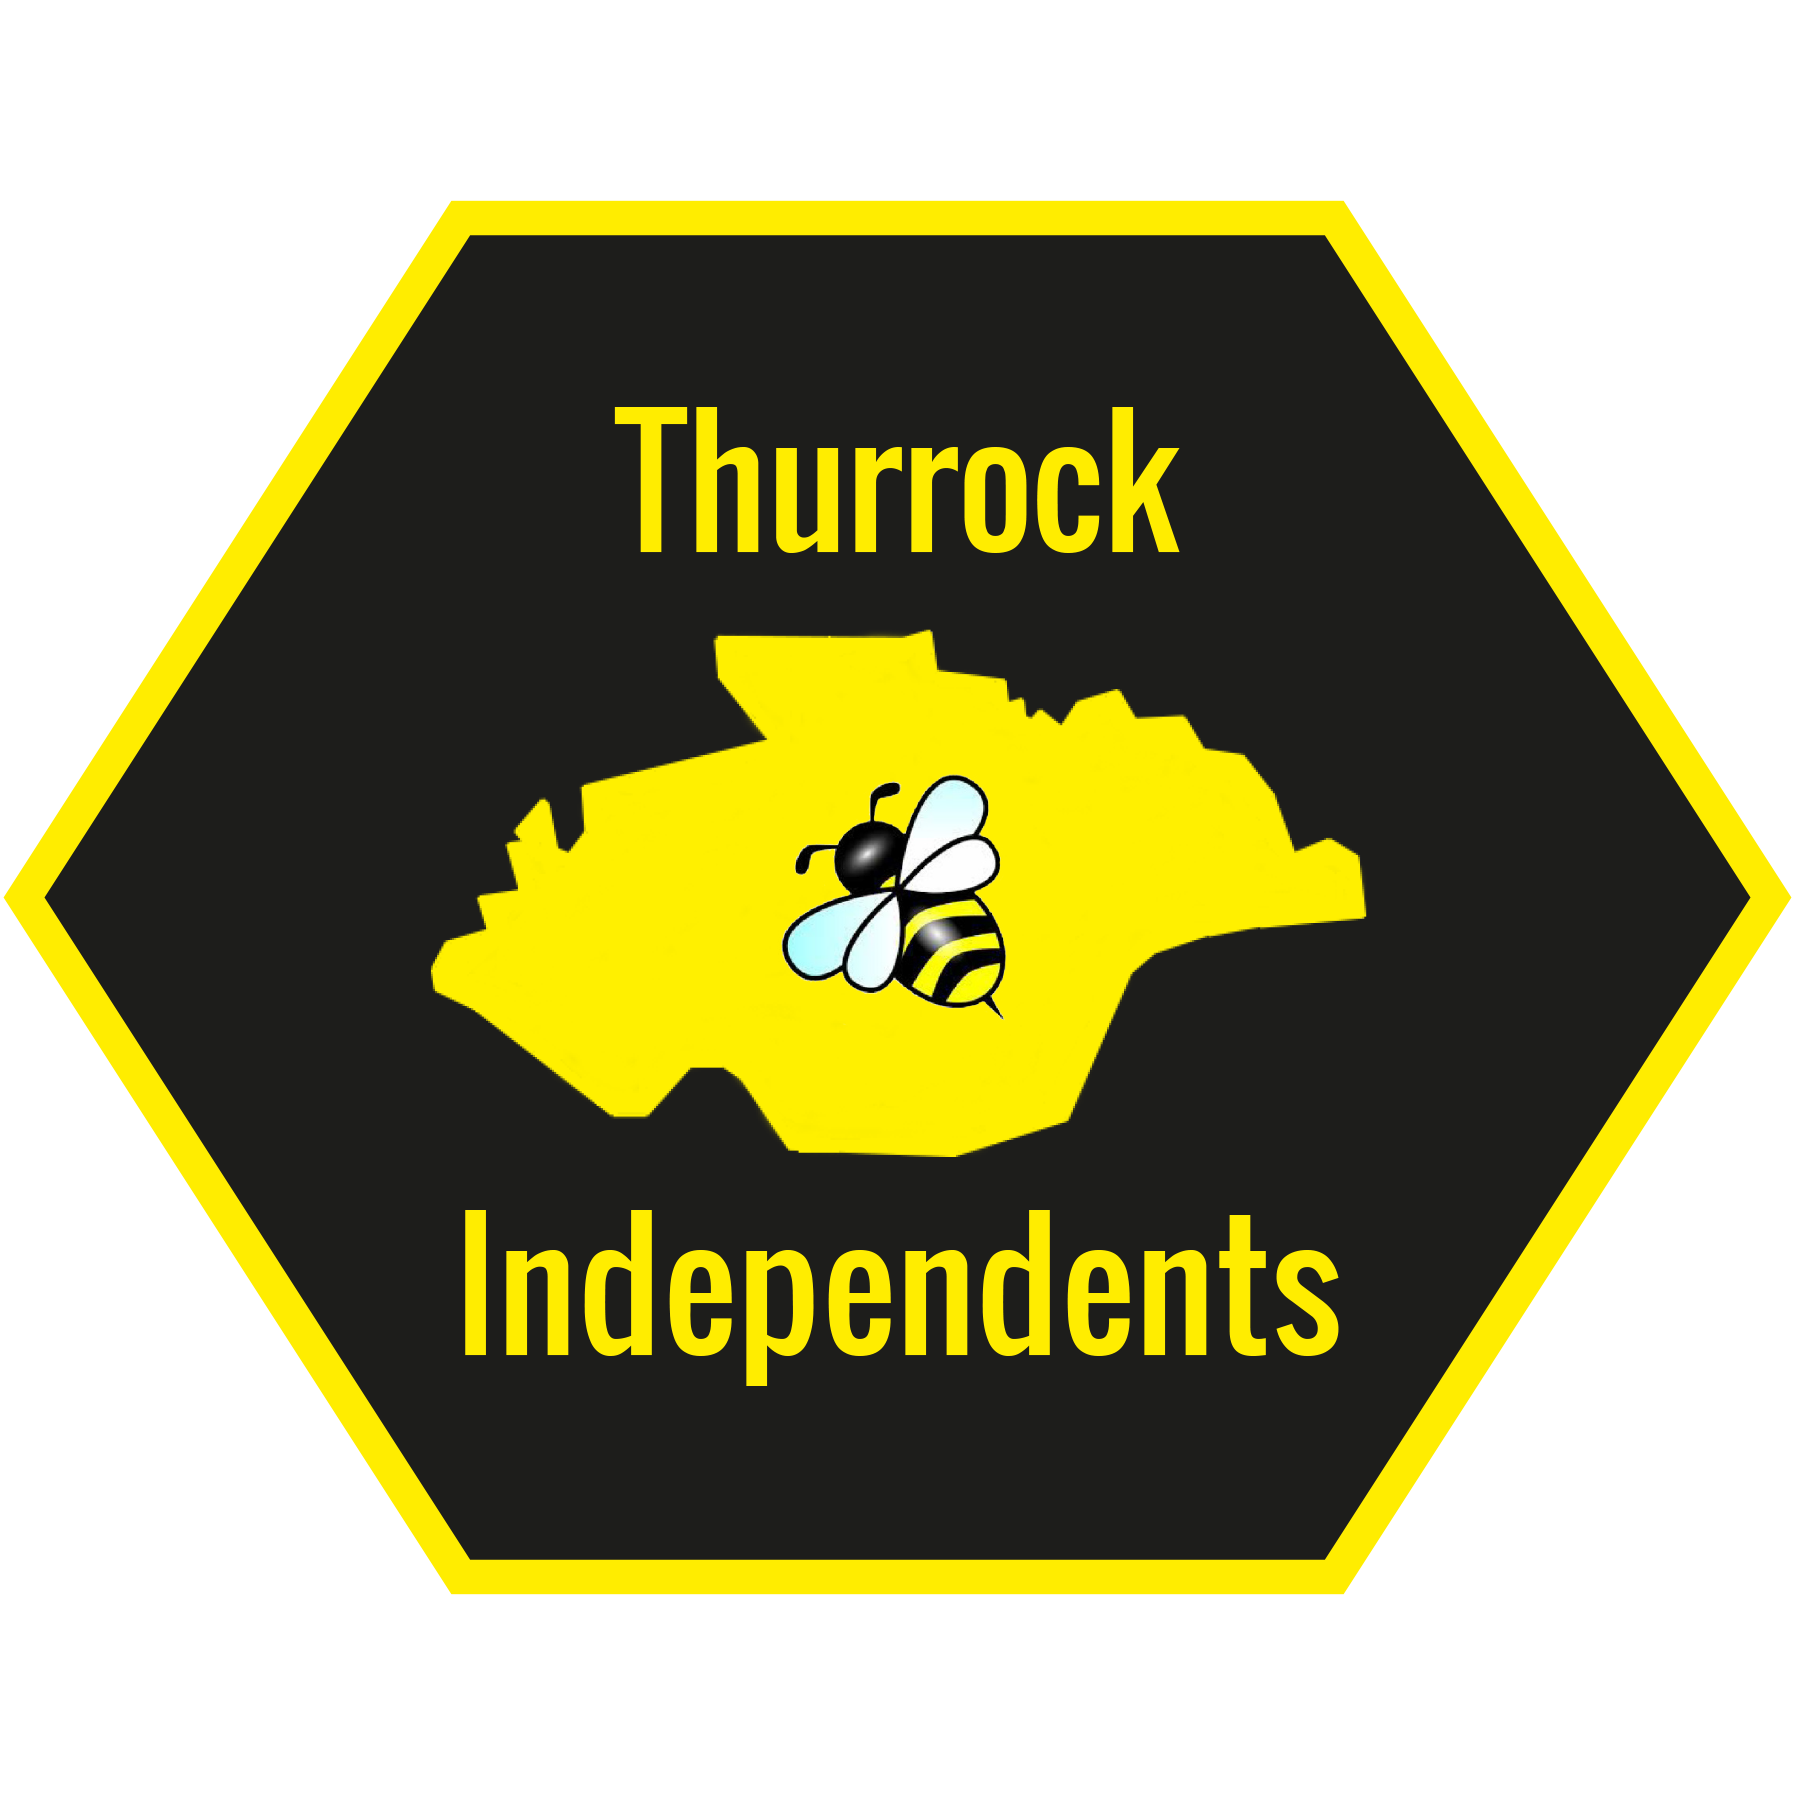 Thurrock Independents new logo